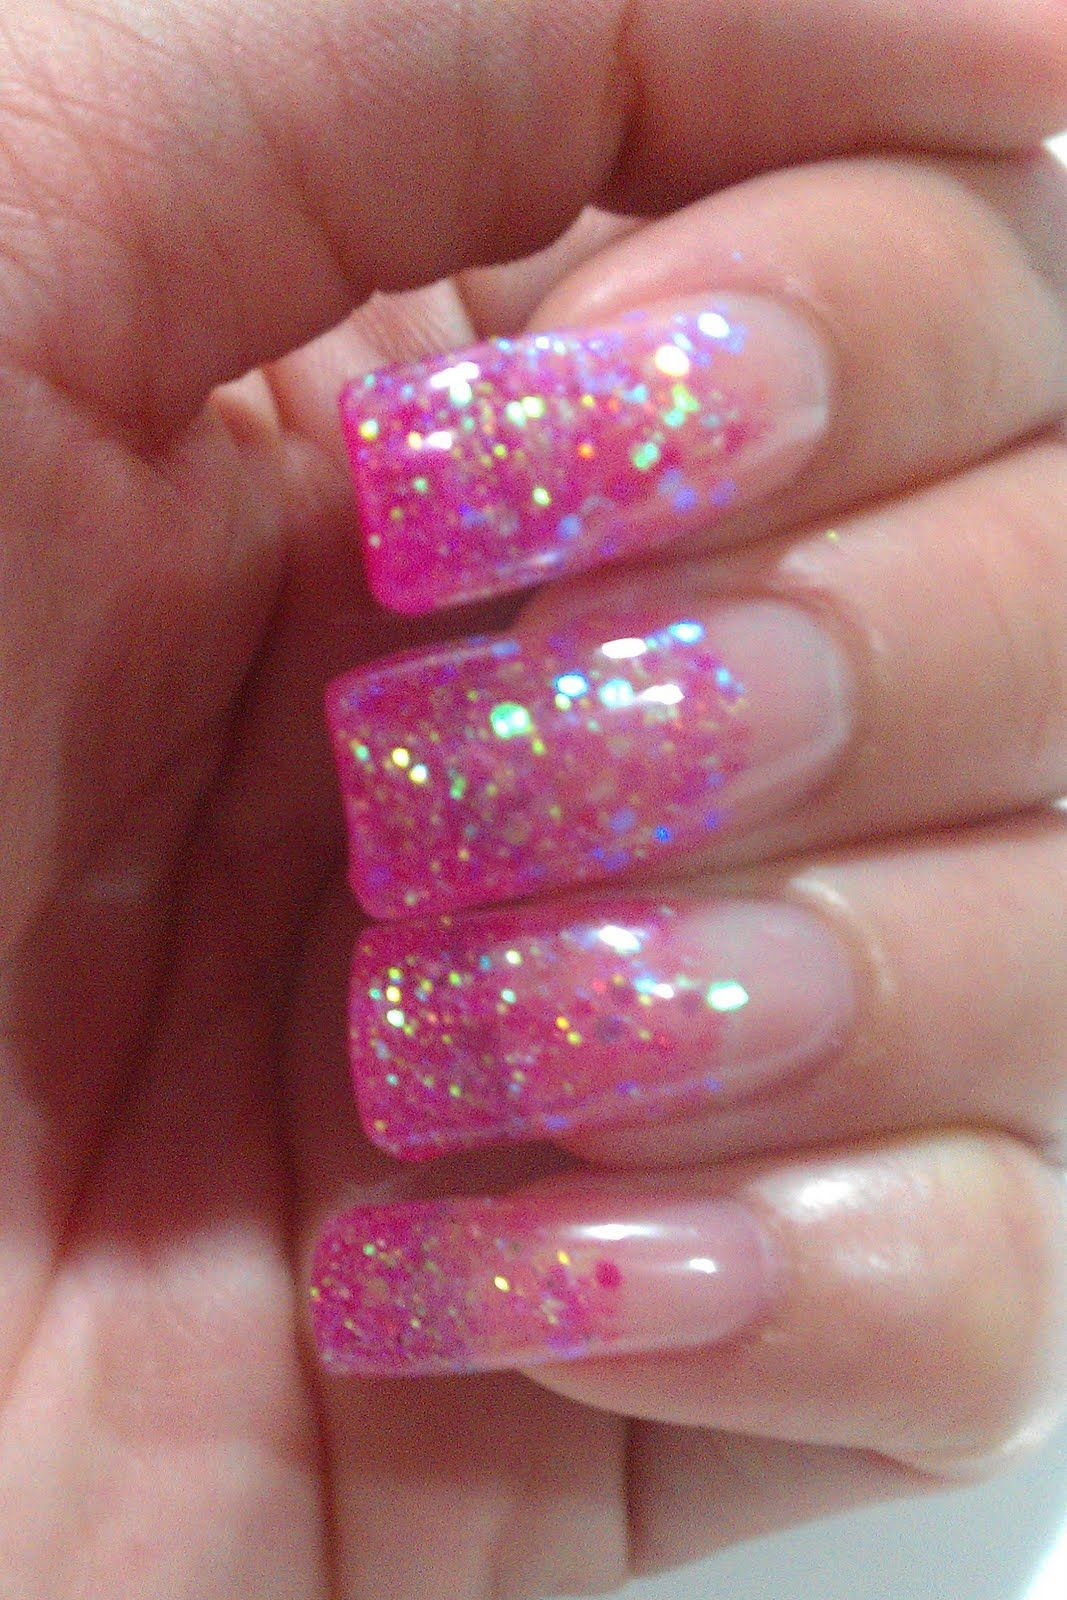 Gel nail designs with glitter the clover beauty inn notd pink gel nail designs with glitter the clover beauty inn notd pink glitter gel prinsesfo Images